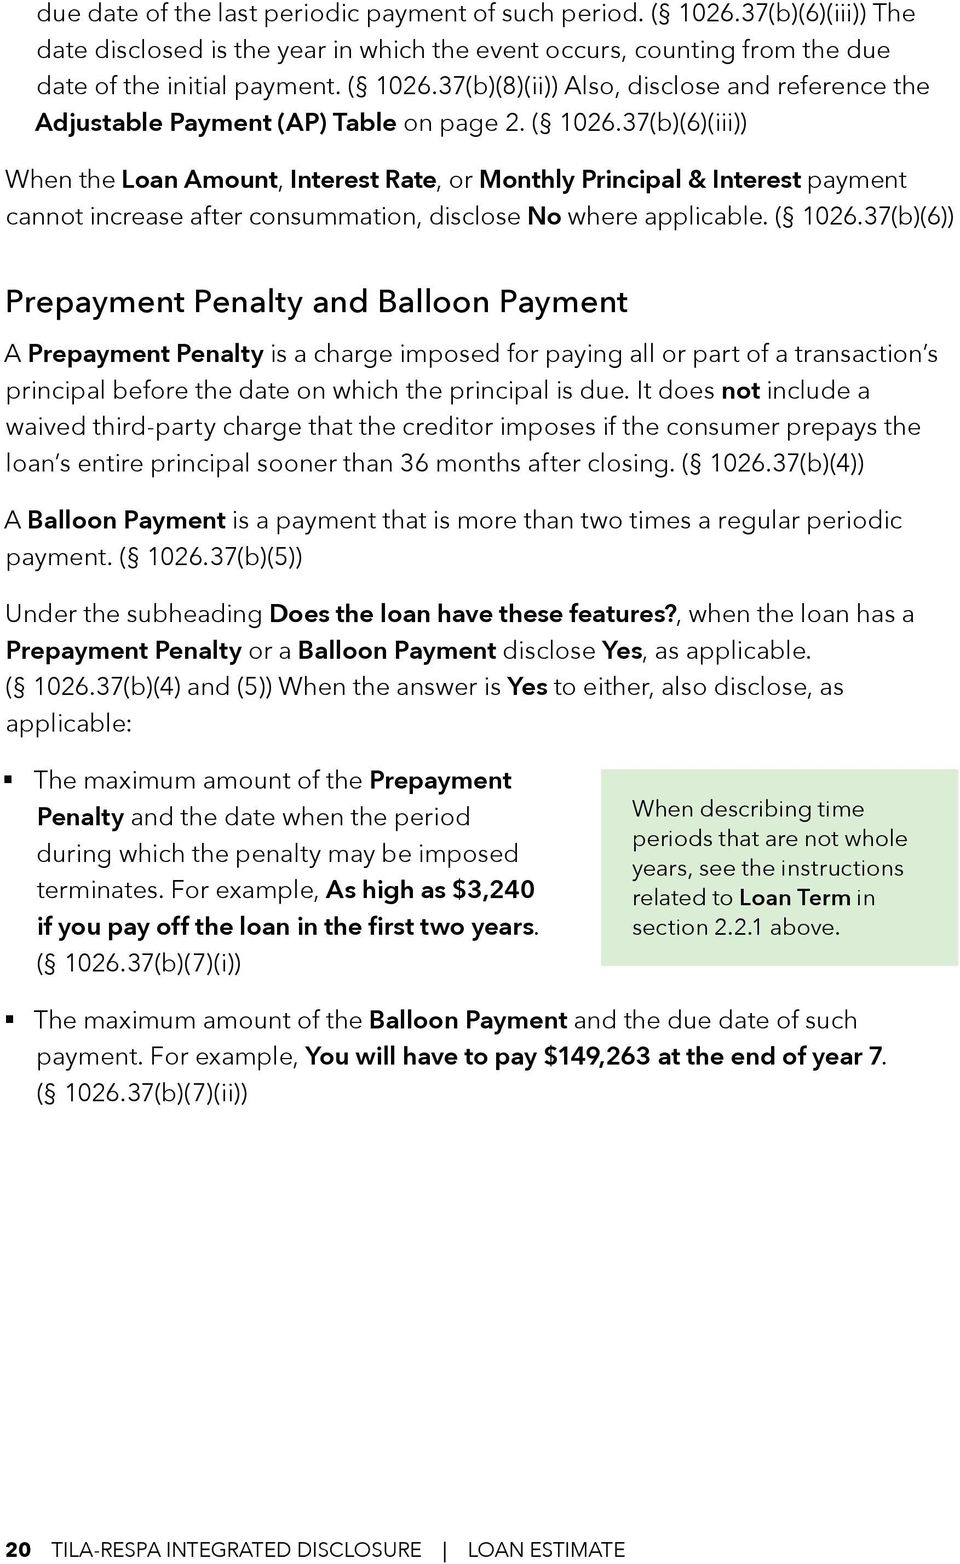 37(b)(6)) Prepayment Penalty and Balloon Payment A Prepayment Penalty is a charge imposed for paying all or part of a transaction s principal before the date on which the principal is due.